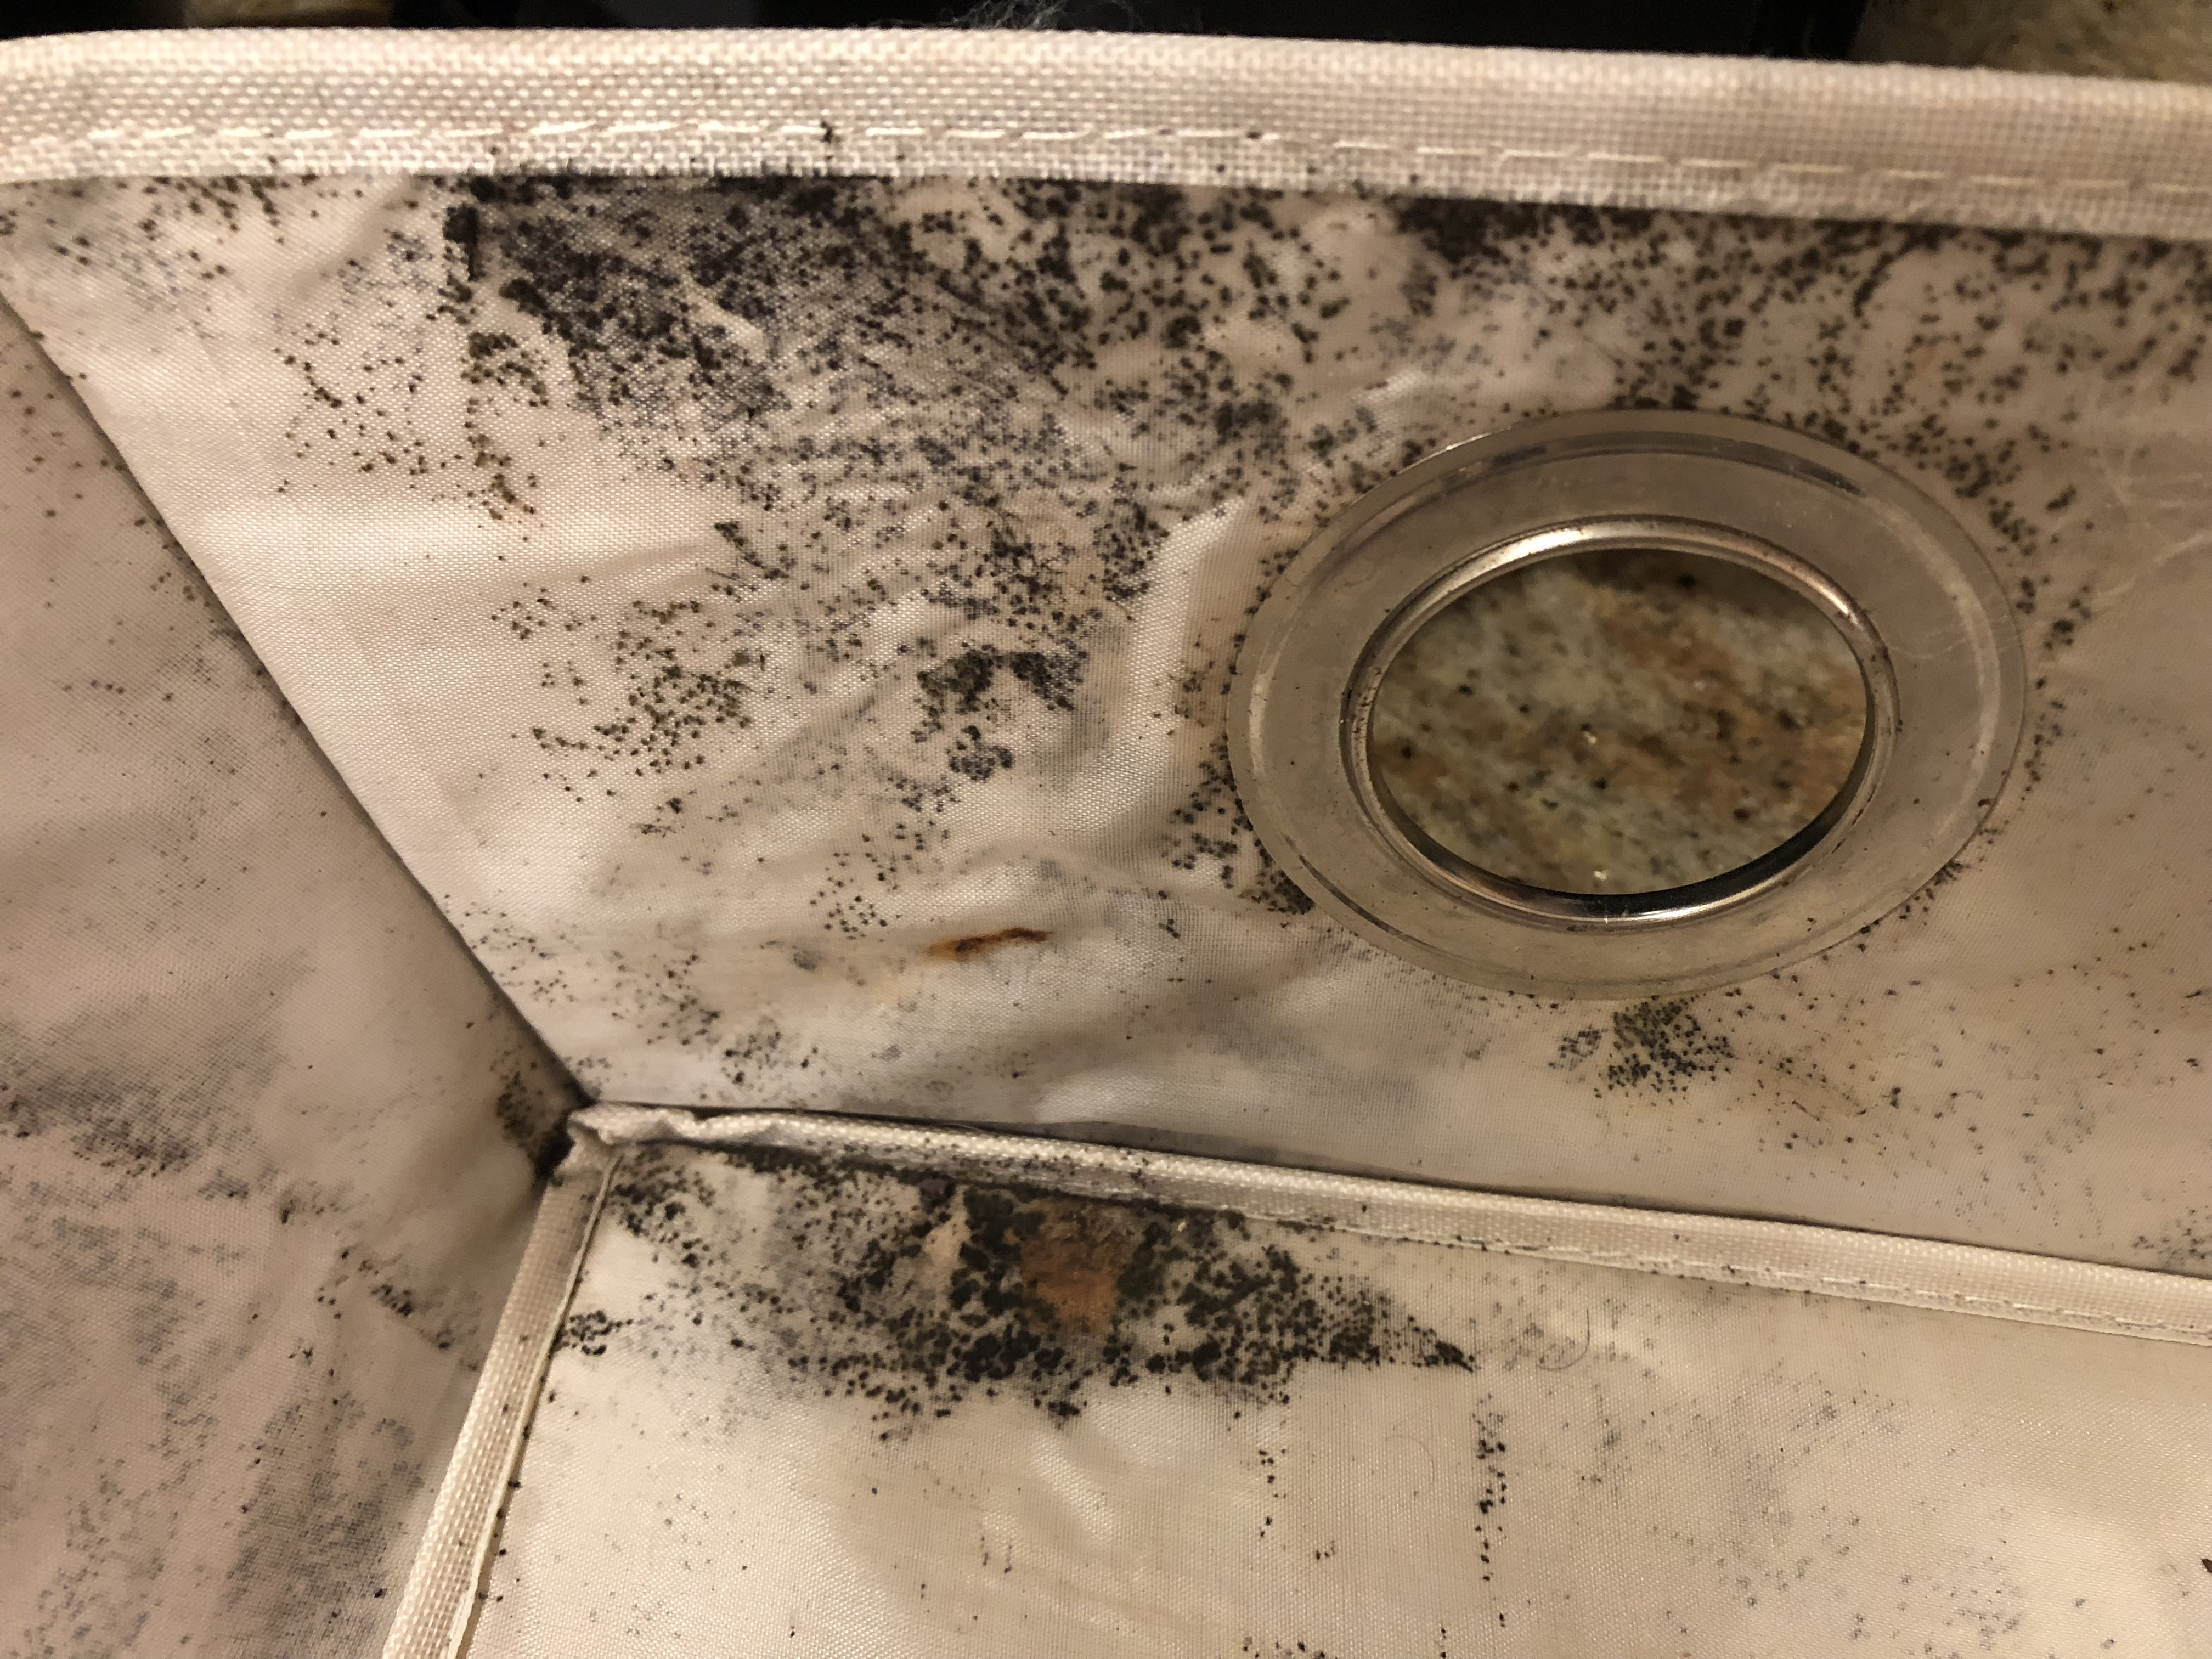 Mold and mildew pervade campus